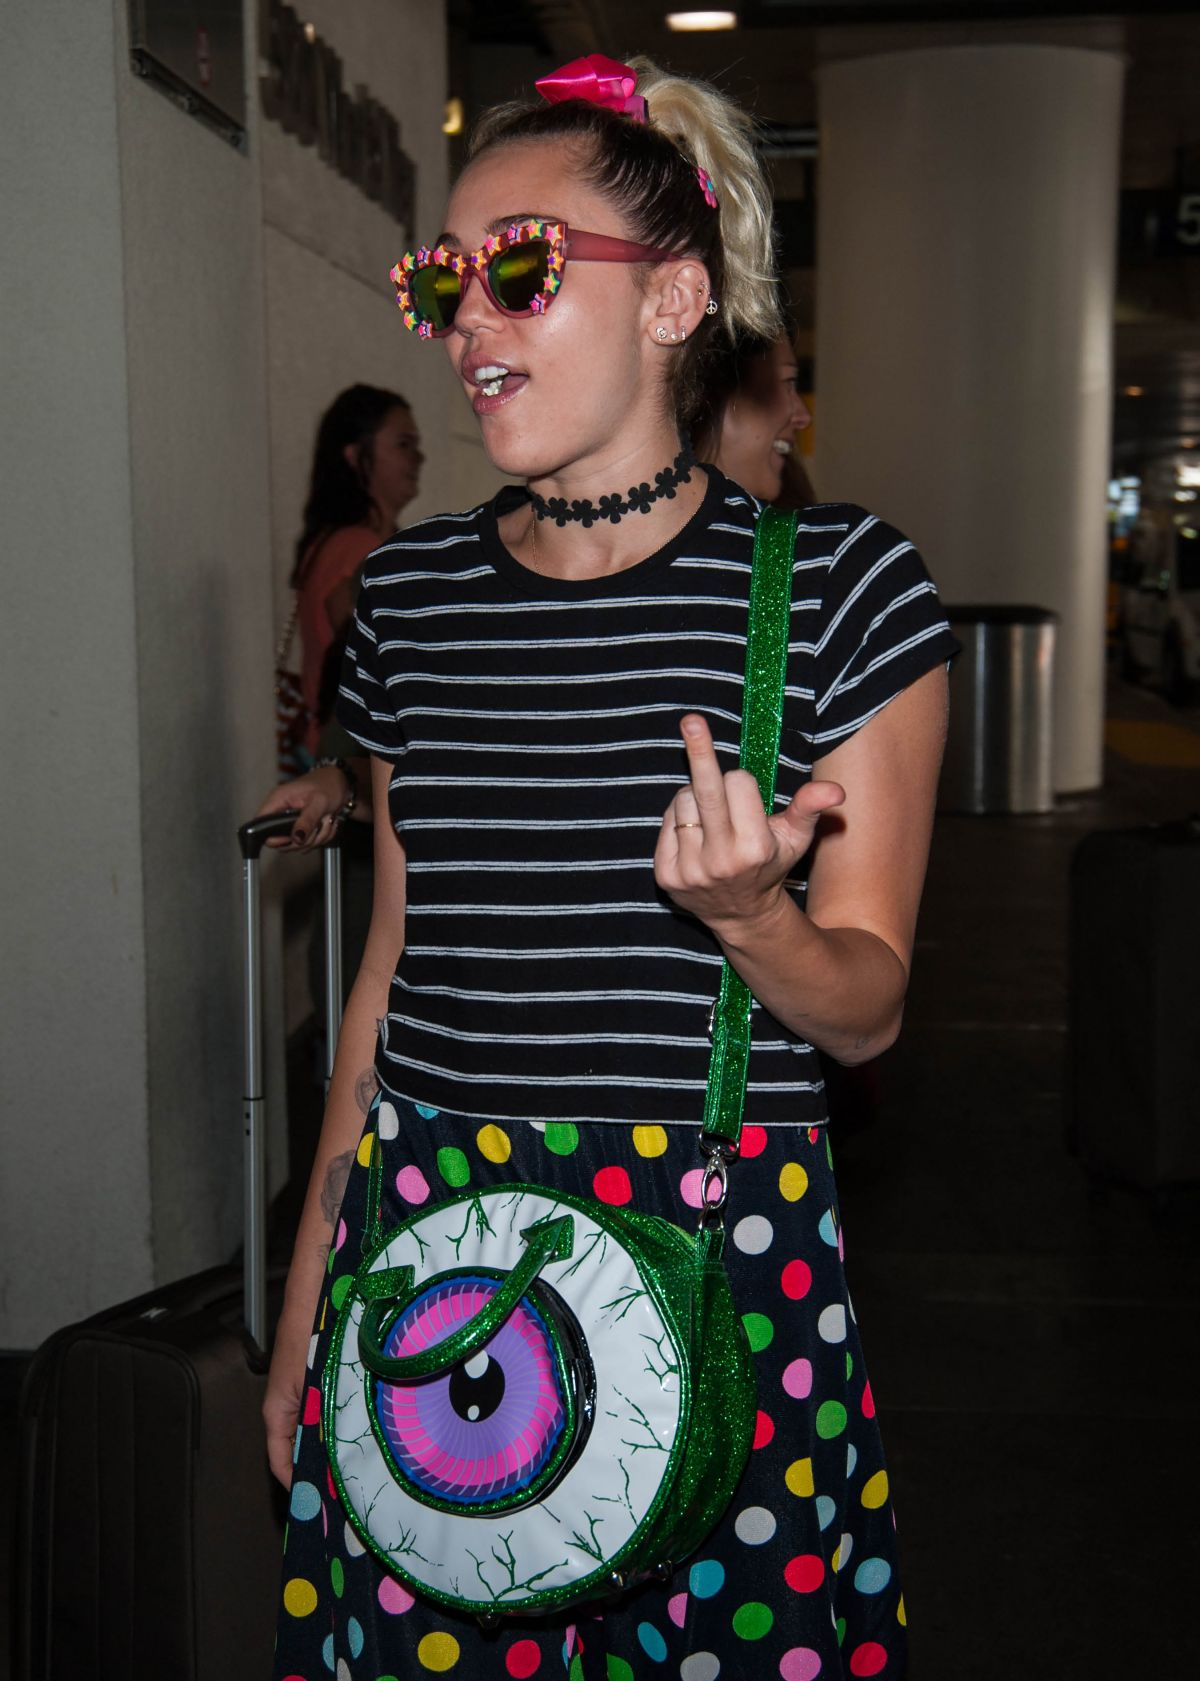 MILEY CYRUS at LAX Airport in Los Angeles 09/30/2016